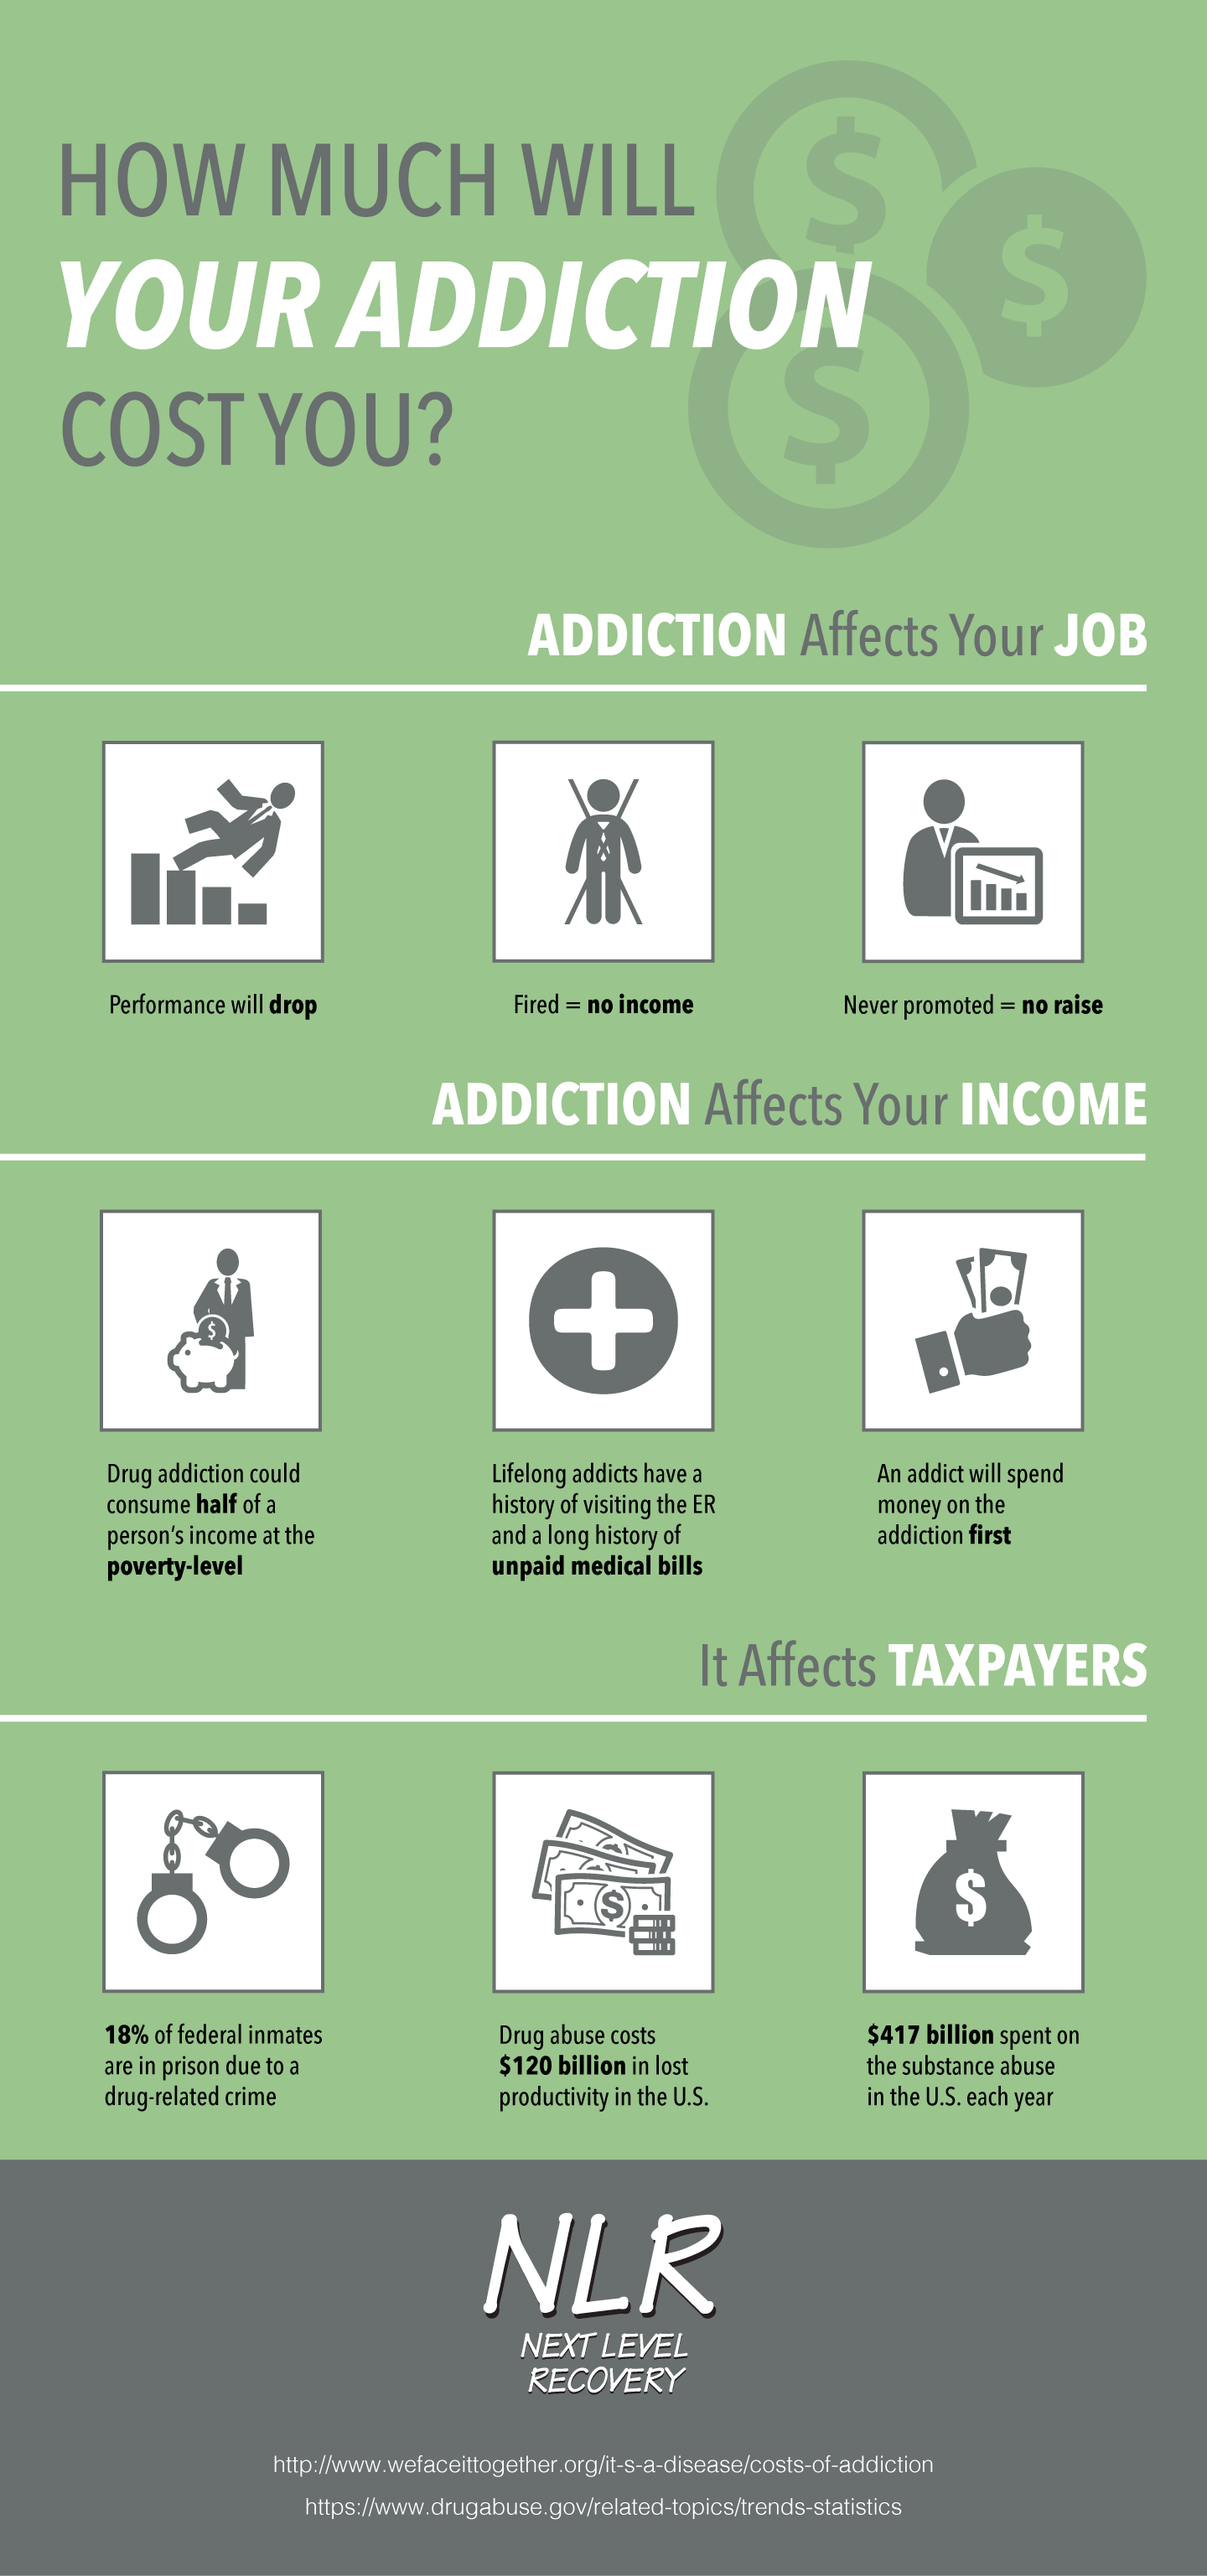 How Much Will Your Addiction Cost You?  Next Level Recovery